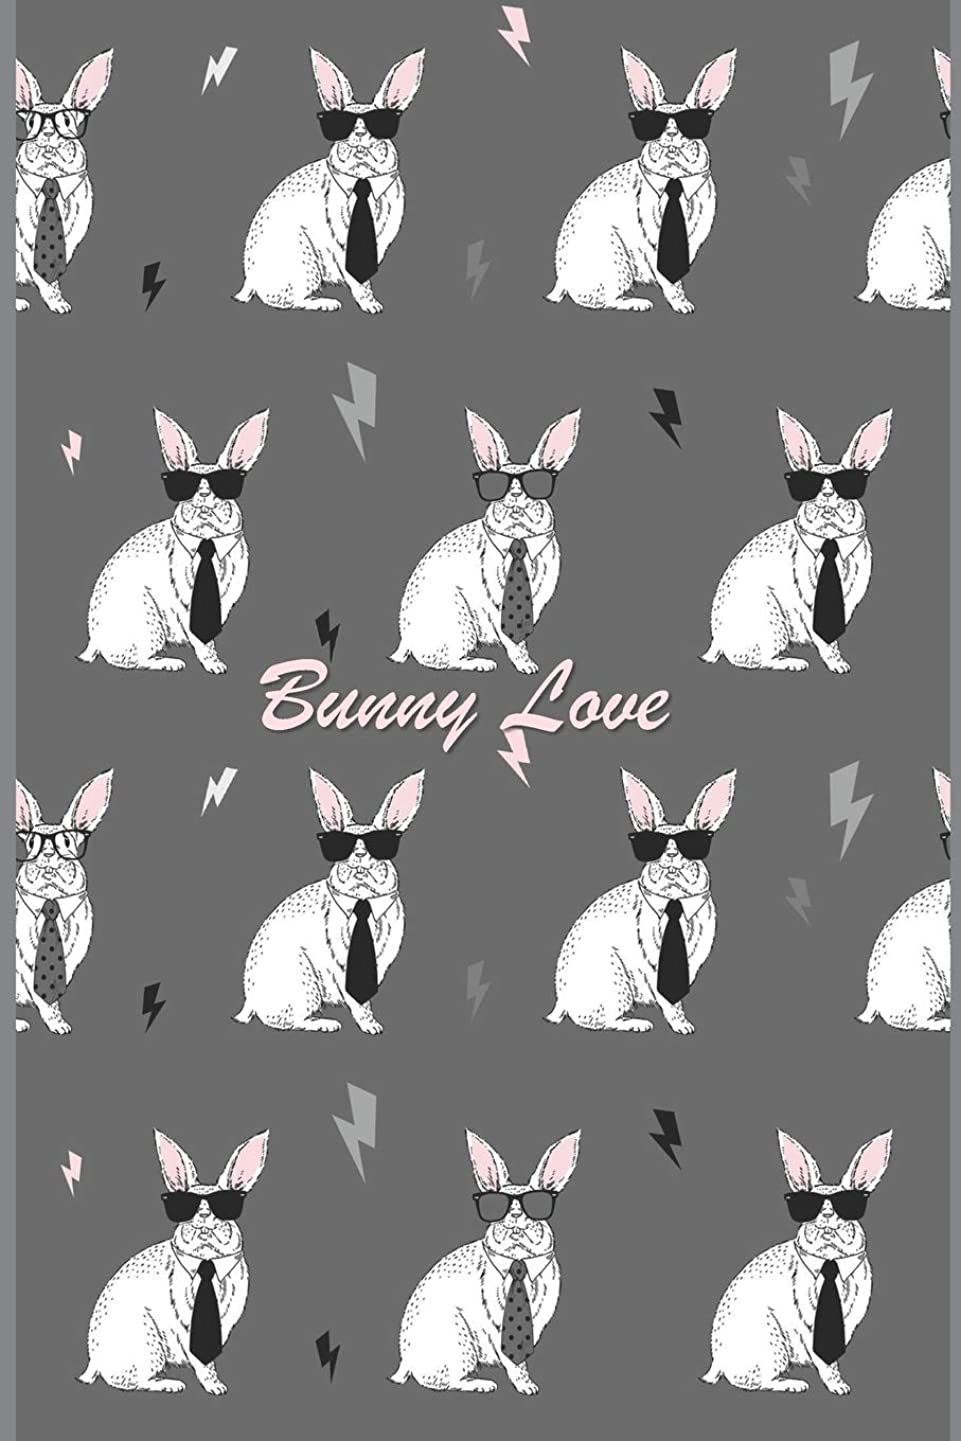 "敬礼タンク導体Bunny Love: 124 Page Softcover, Has Lined and Blank Pages Both With a Bunny Border, College Rule Composition (6"" x 9 "") Boho Bunny Rabbits in Sunglasses & Ties"